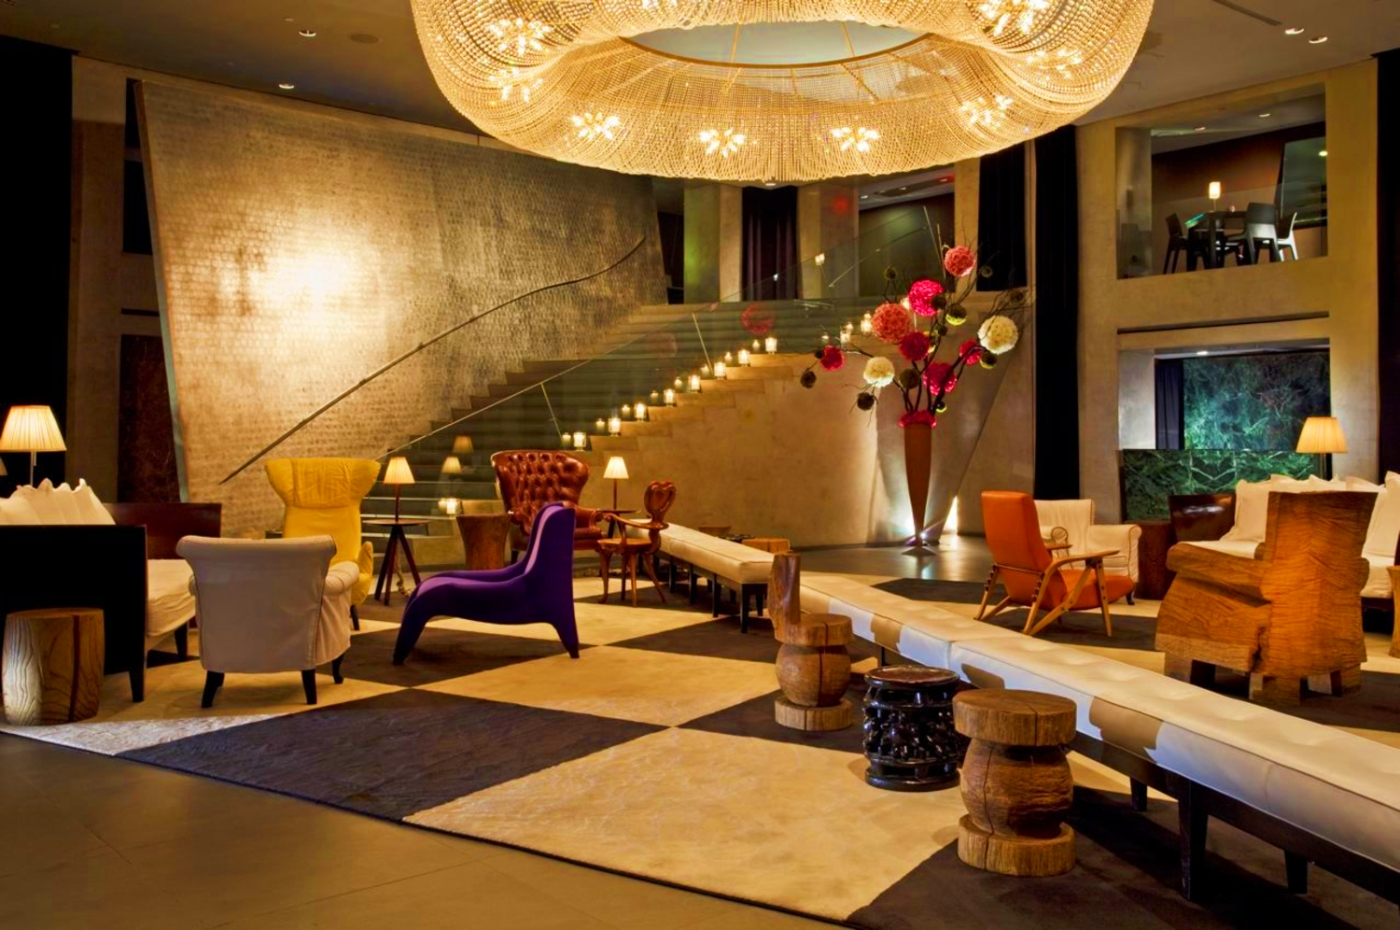 philippe starck Inside Hotel Paramount In New York: A Masterpiece By Philippe Starck feature image 70 1400x930